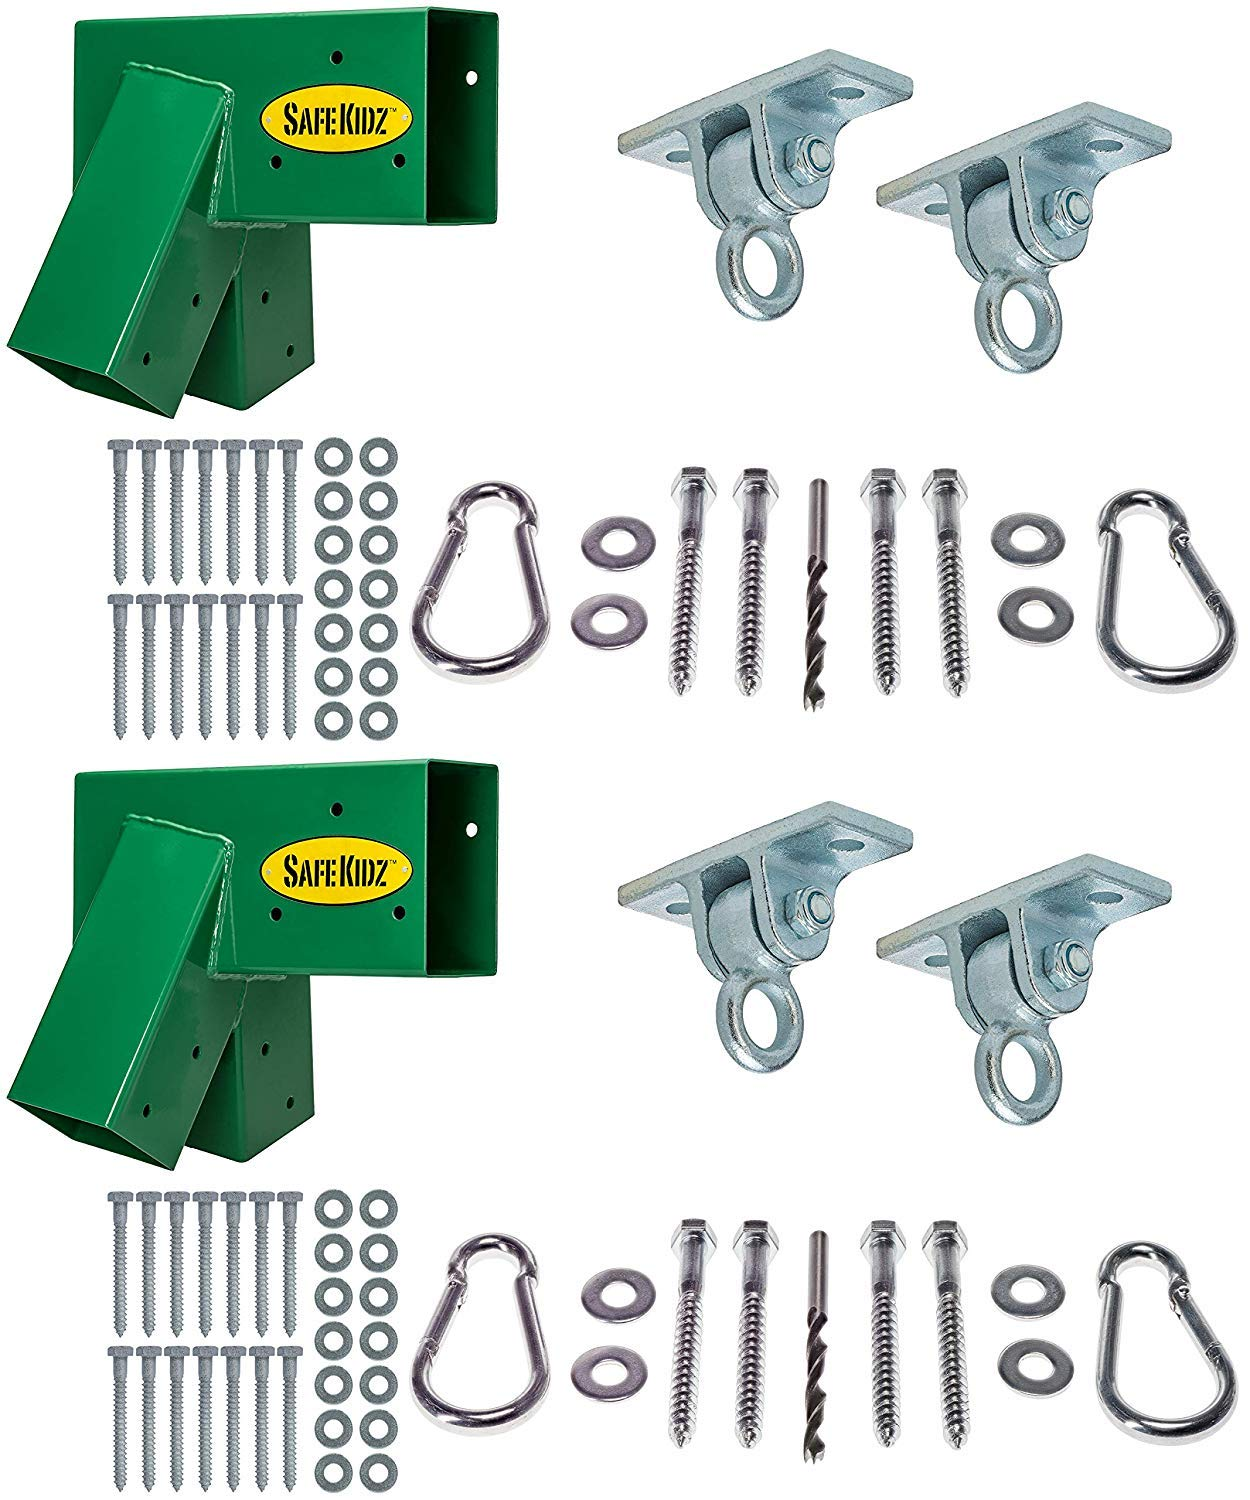 Safe-Kidz™ Deluxe Wooden Swing Set Brackets :: Set of 2 Steel Swing Braces, Set of 4 Playset Hangers, Drill Bit & All of The Hardware & Instructions for Easy Installations